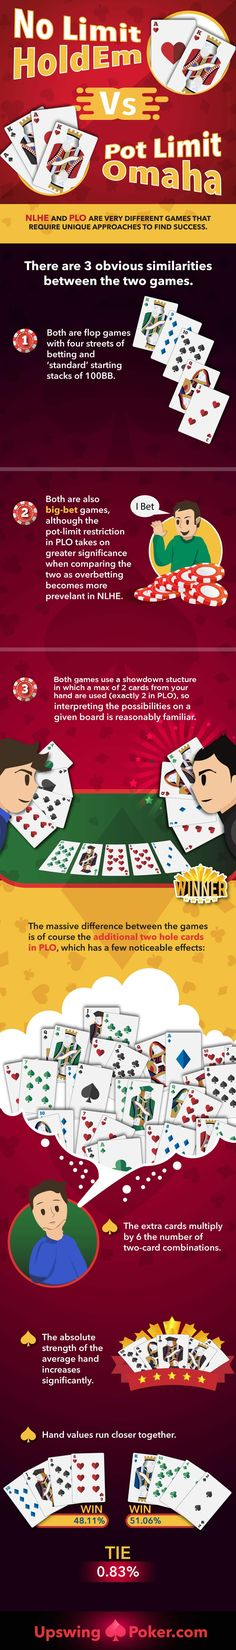 Pot Limit Omaha vs No Limit Holdem Strategy Poker Infographic